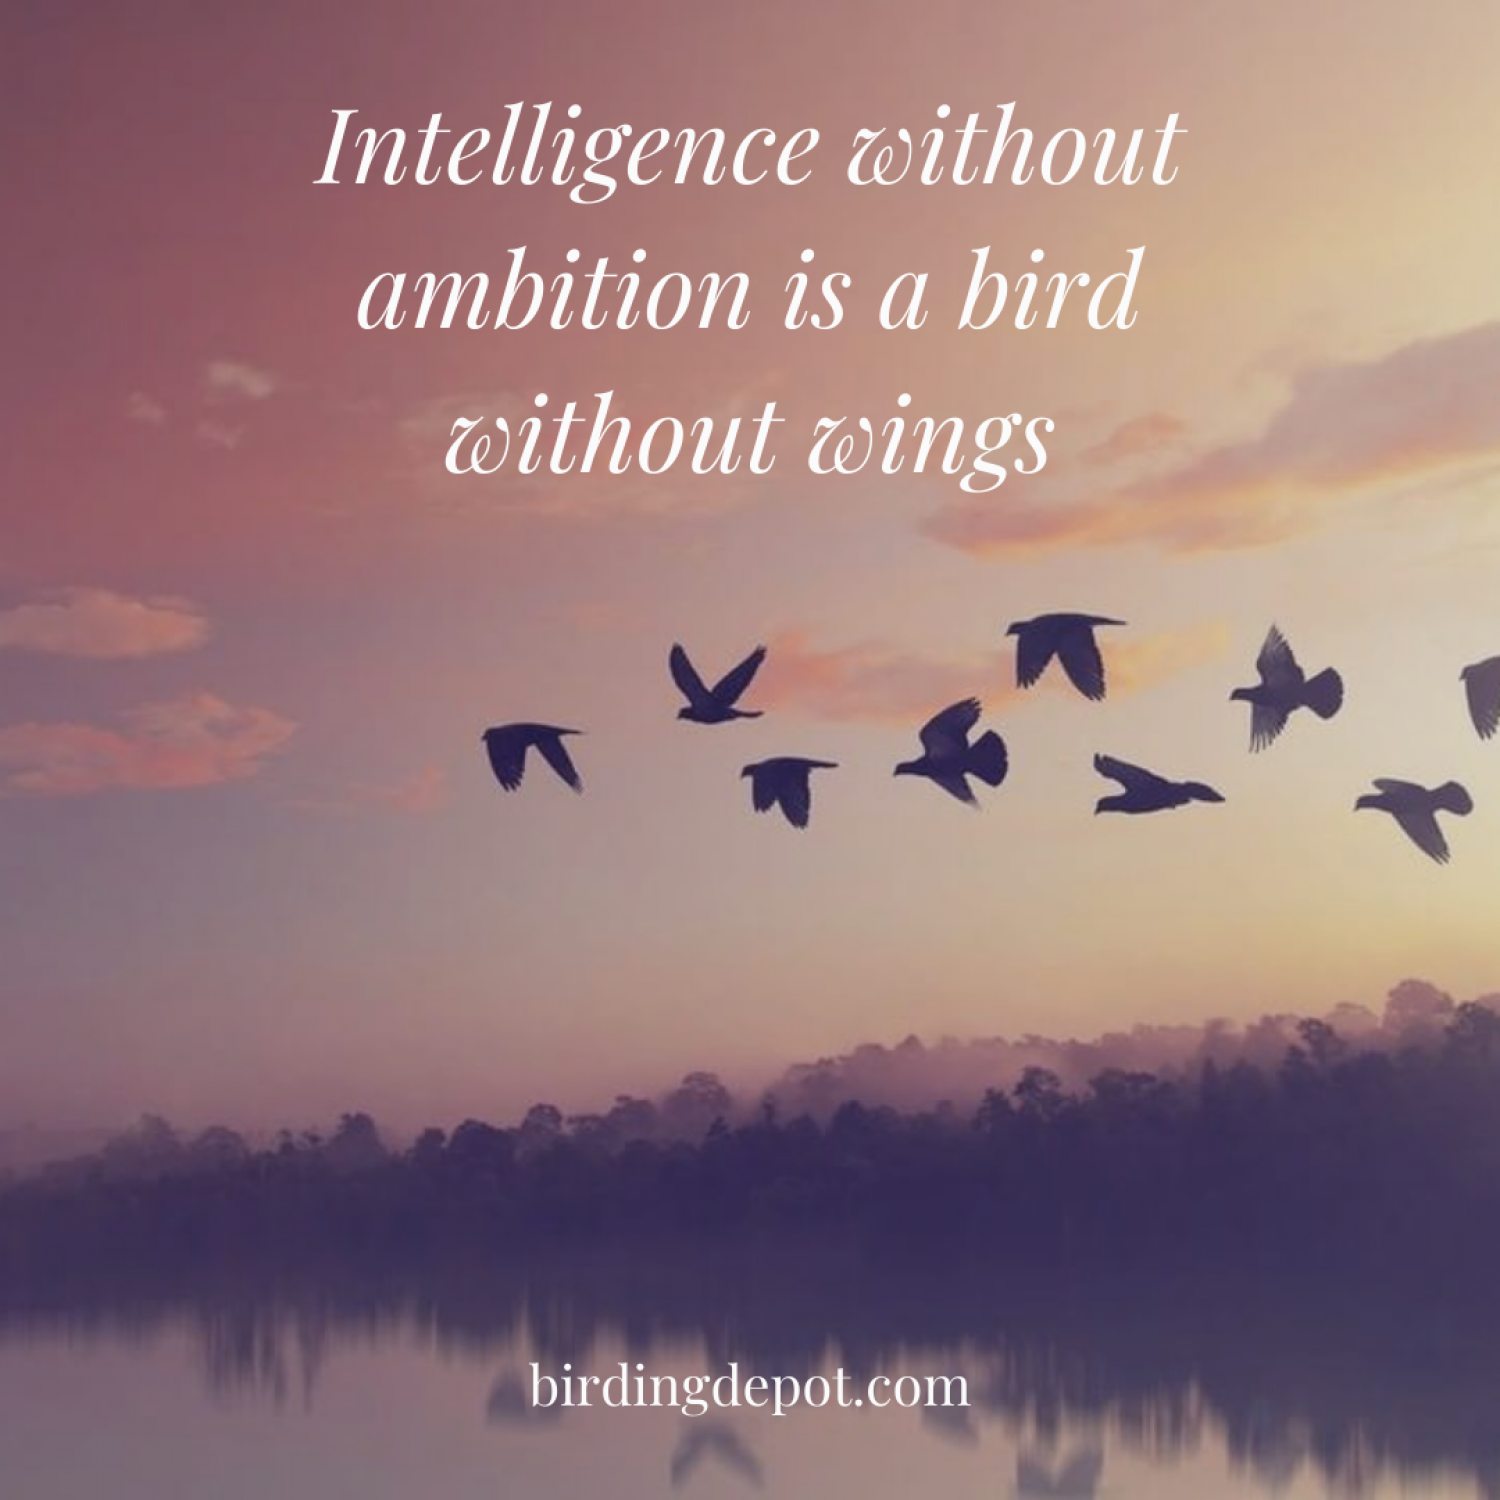 Intelligence without ambition is a bird without wings Infographic